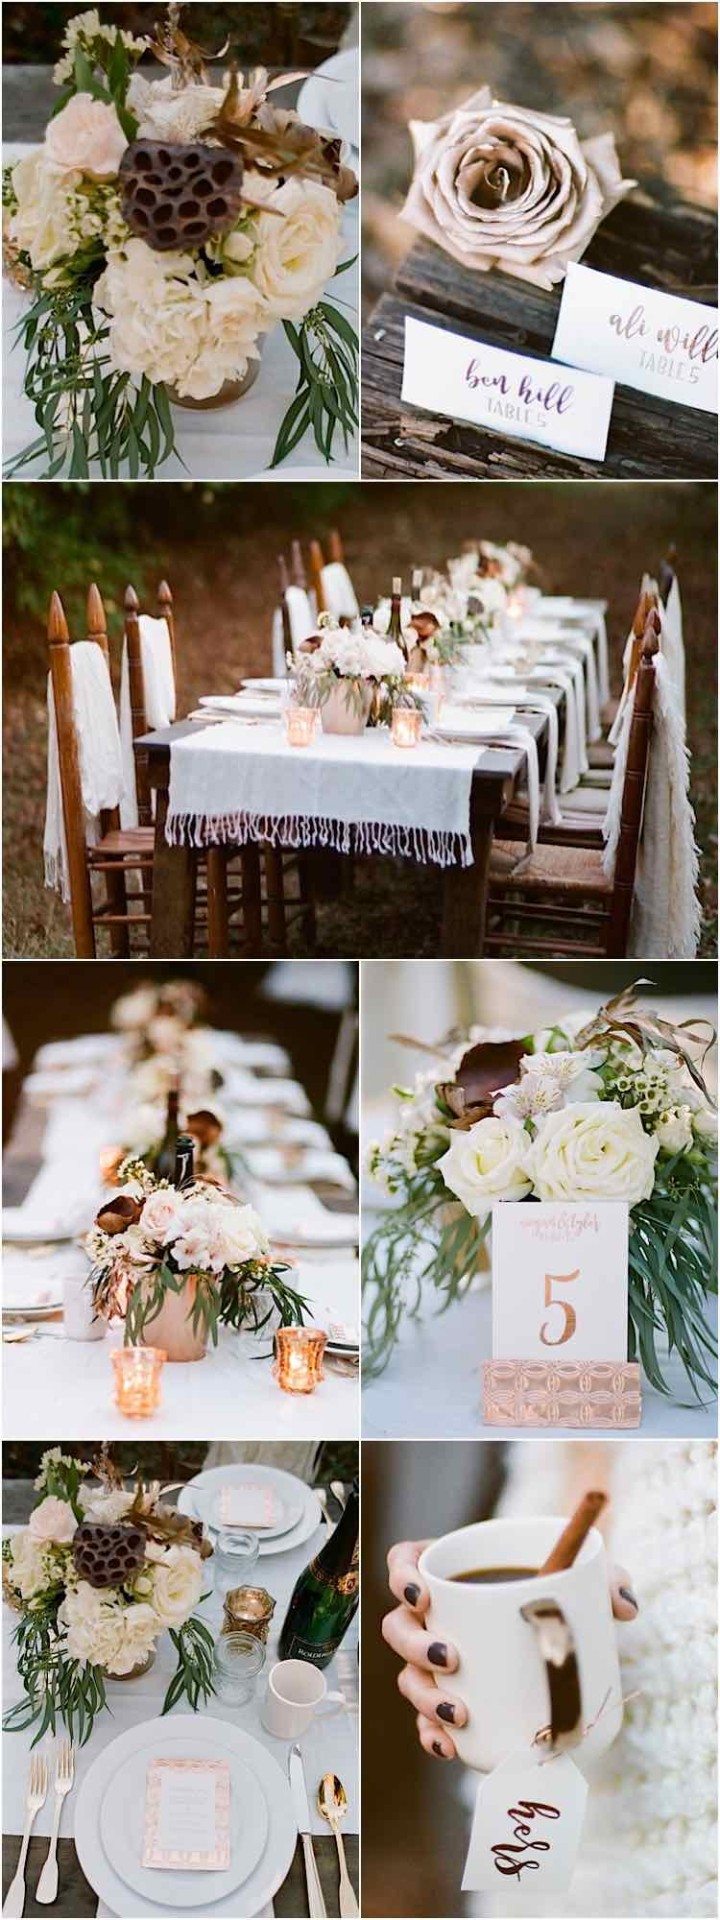 rustic-wedding-reception-1-01222016nz